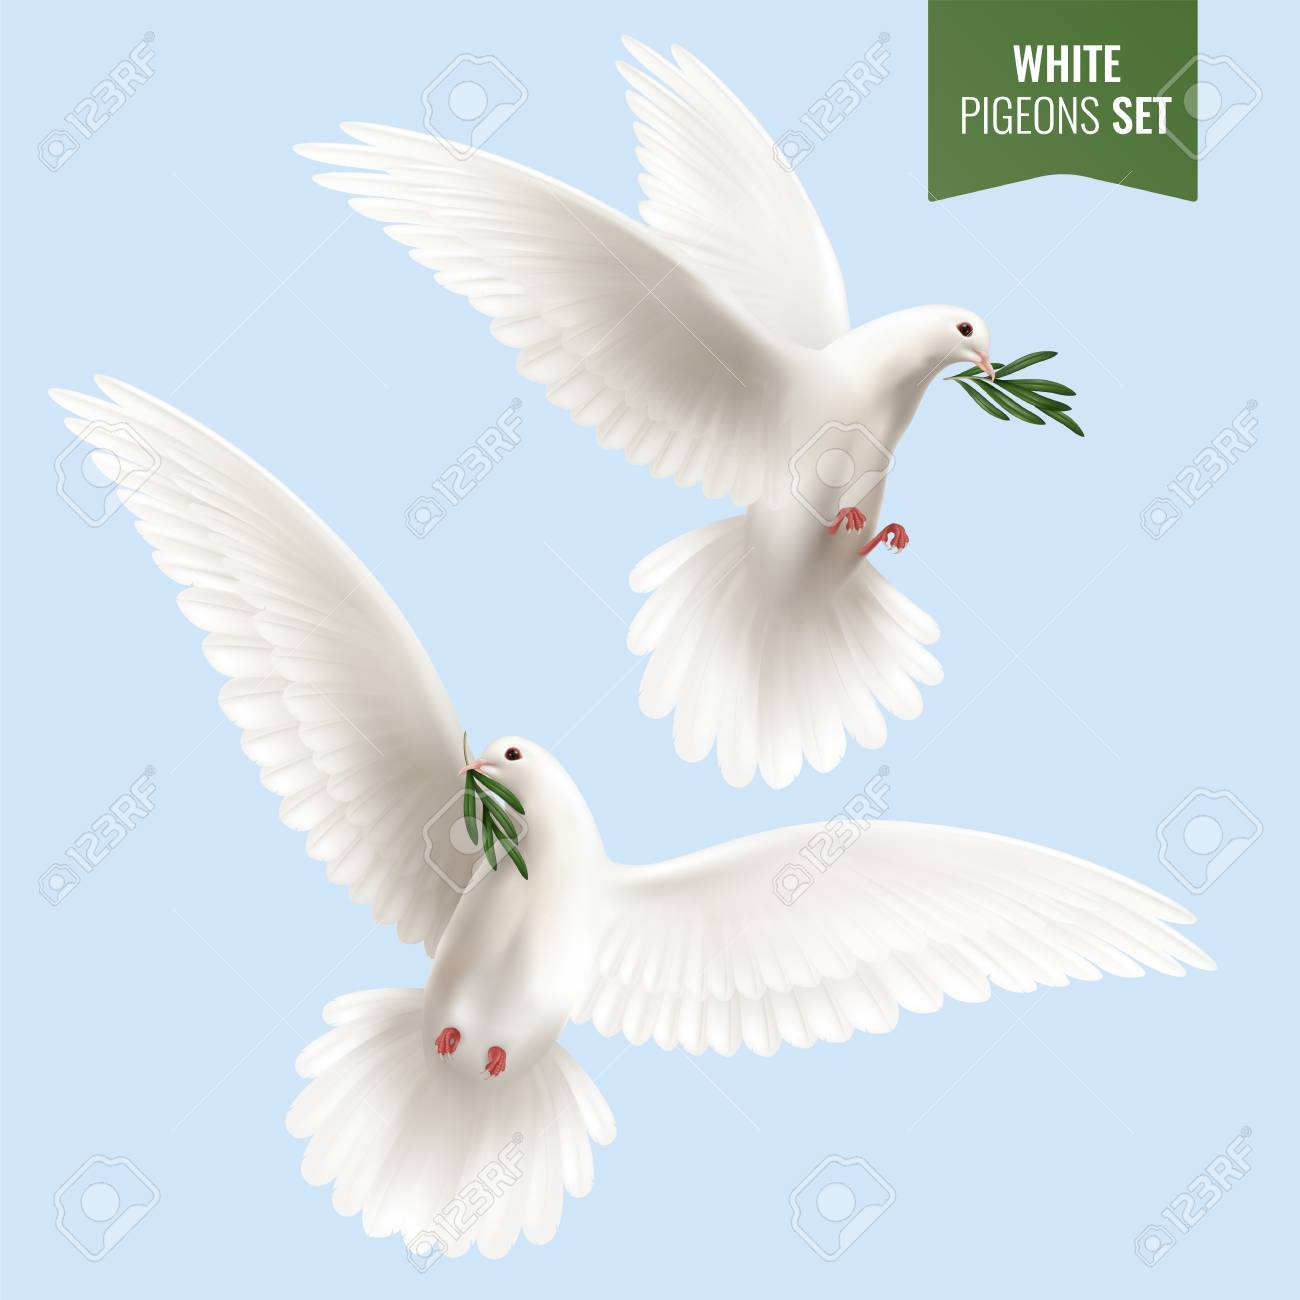 White Dove Set With Peace And Olive Branch Symbols Realistic Royalty Free Cliparts Vectors And Stock Illustration Image 108938336